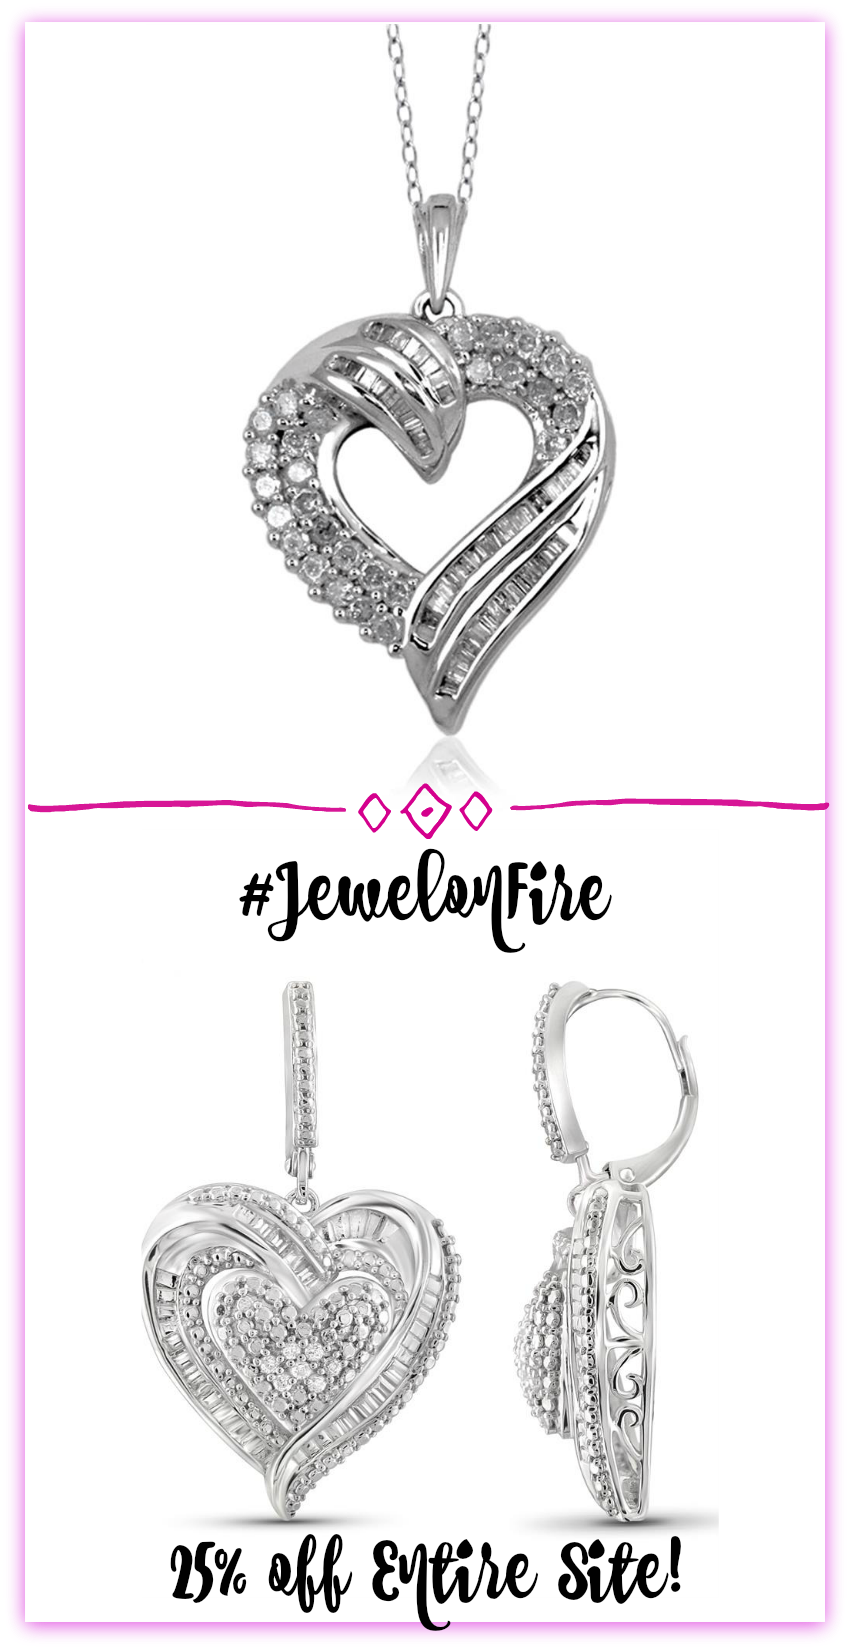 Save 25% on entire site #JewelonFire #ad